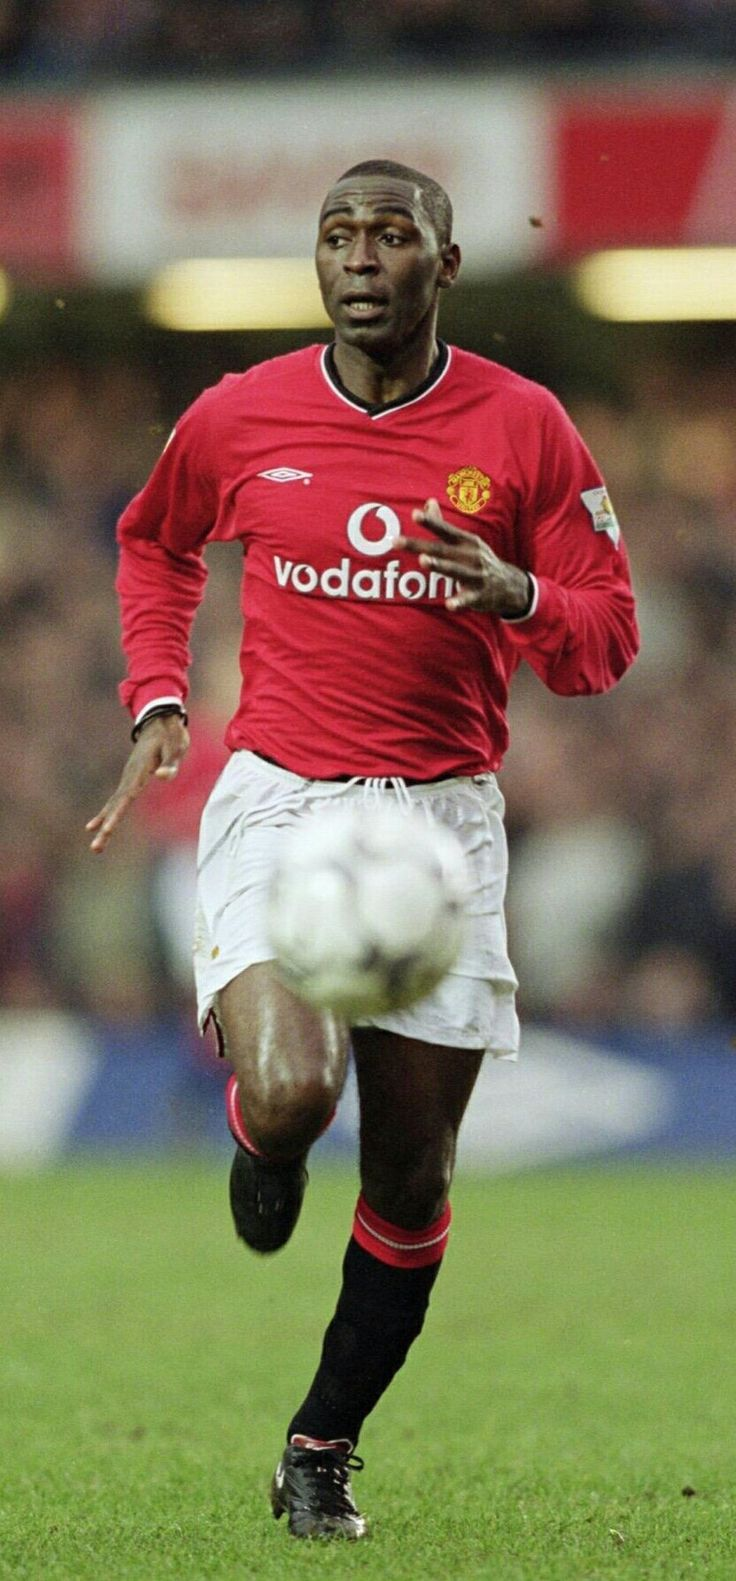 Andy Cole of Man Utd in 2000.